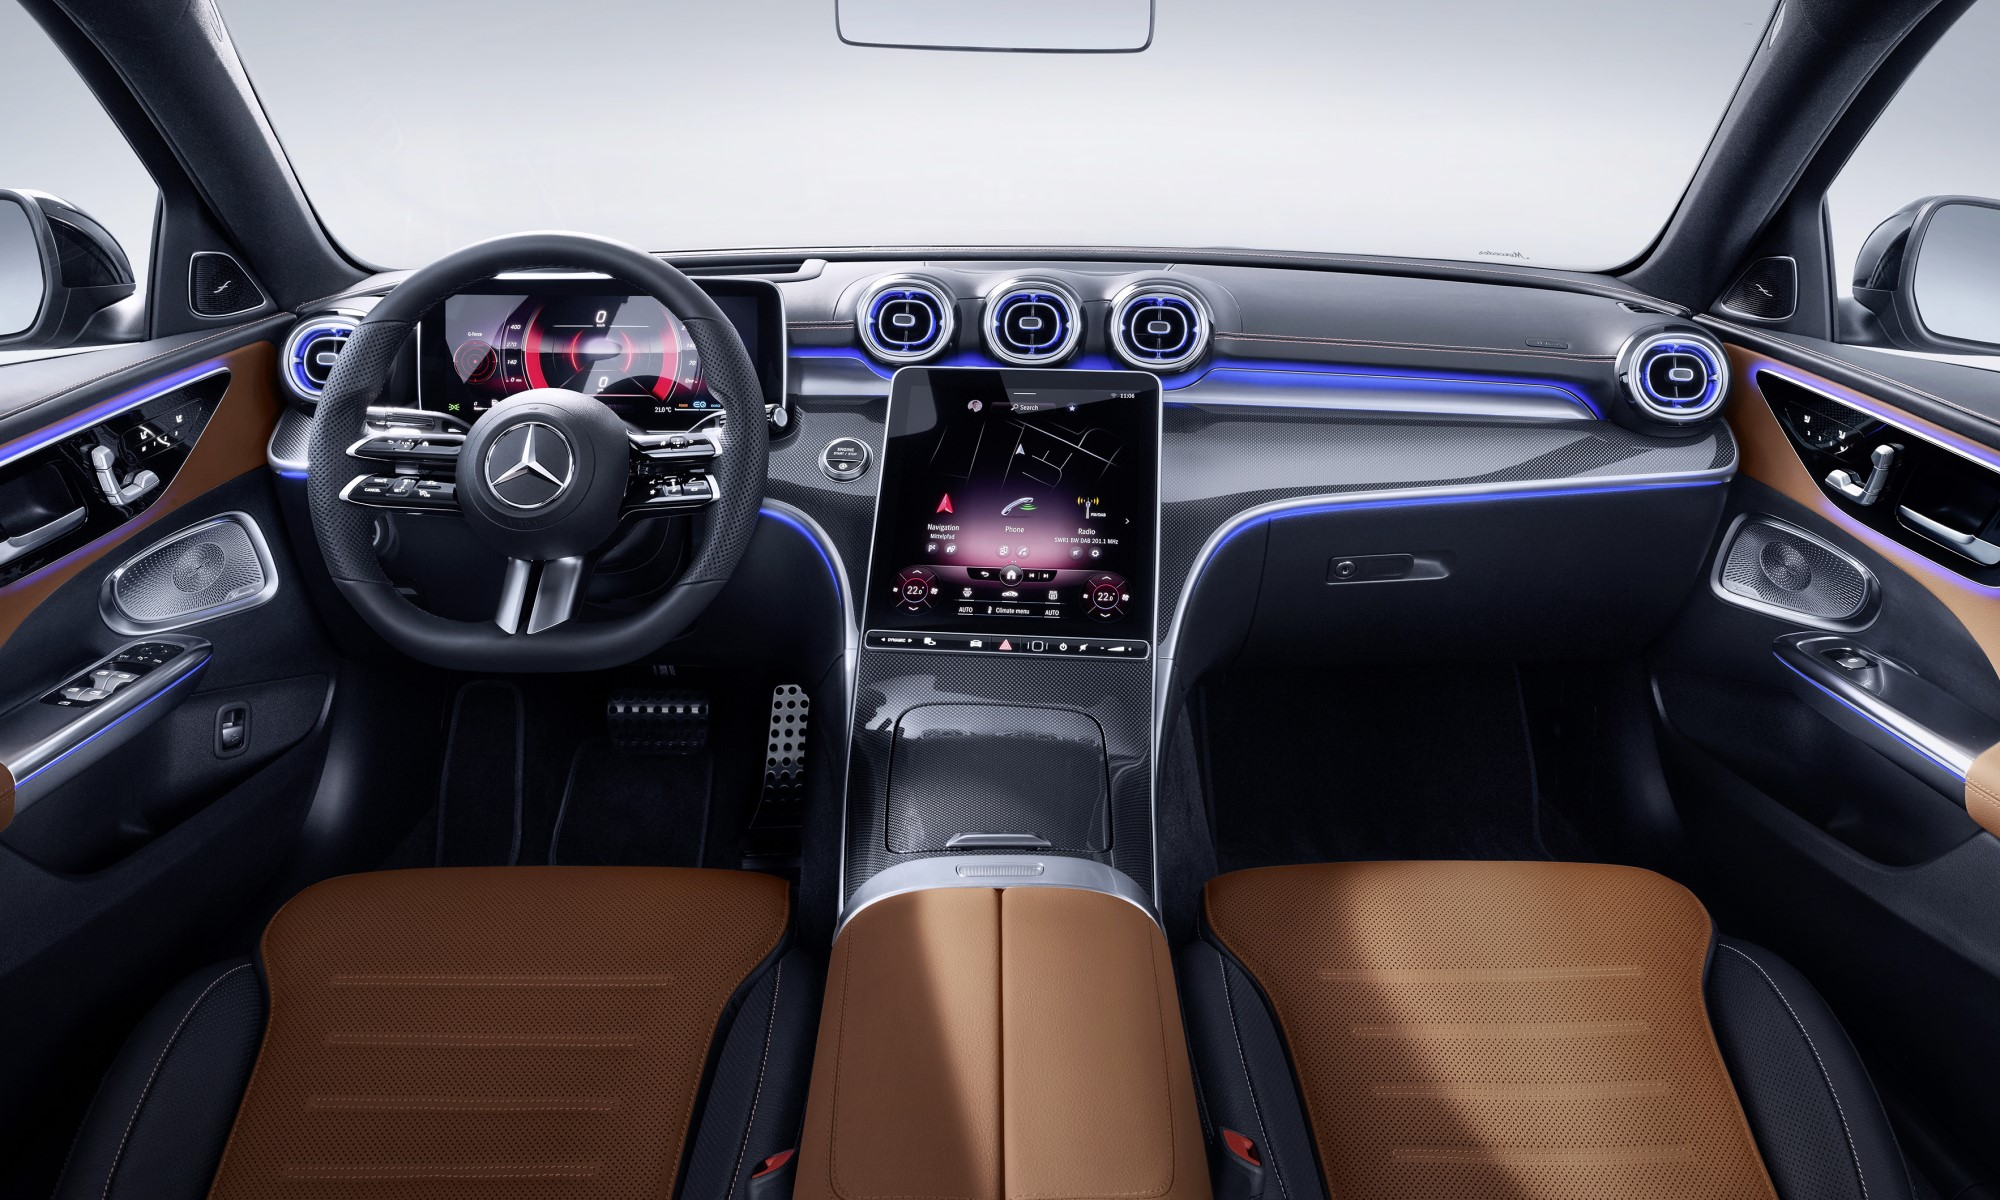 All-new Mercedes-Benz C-Class cabin